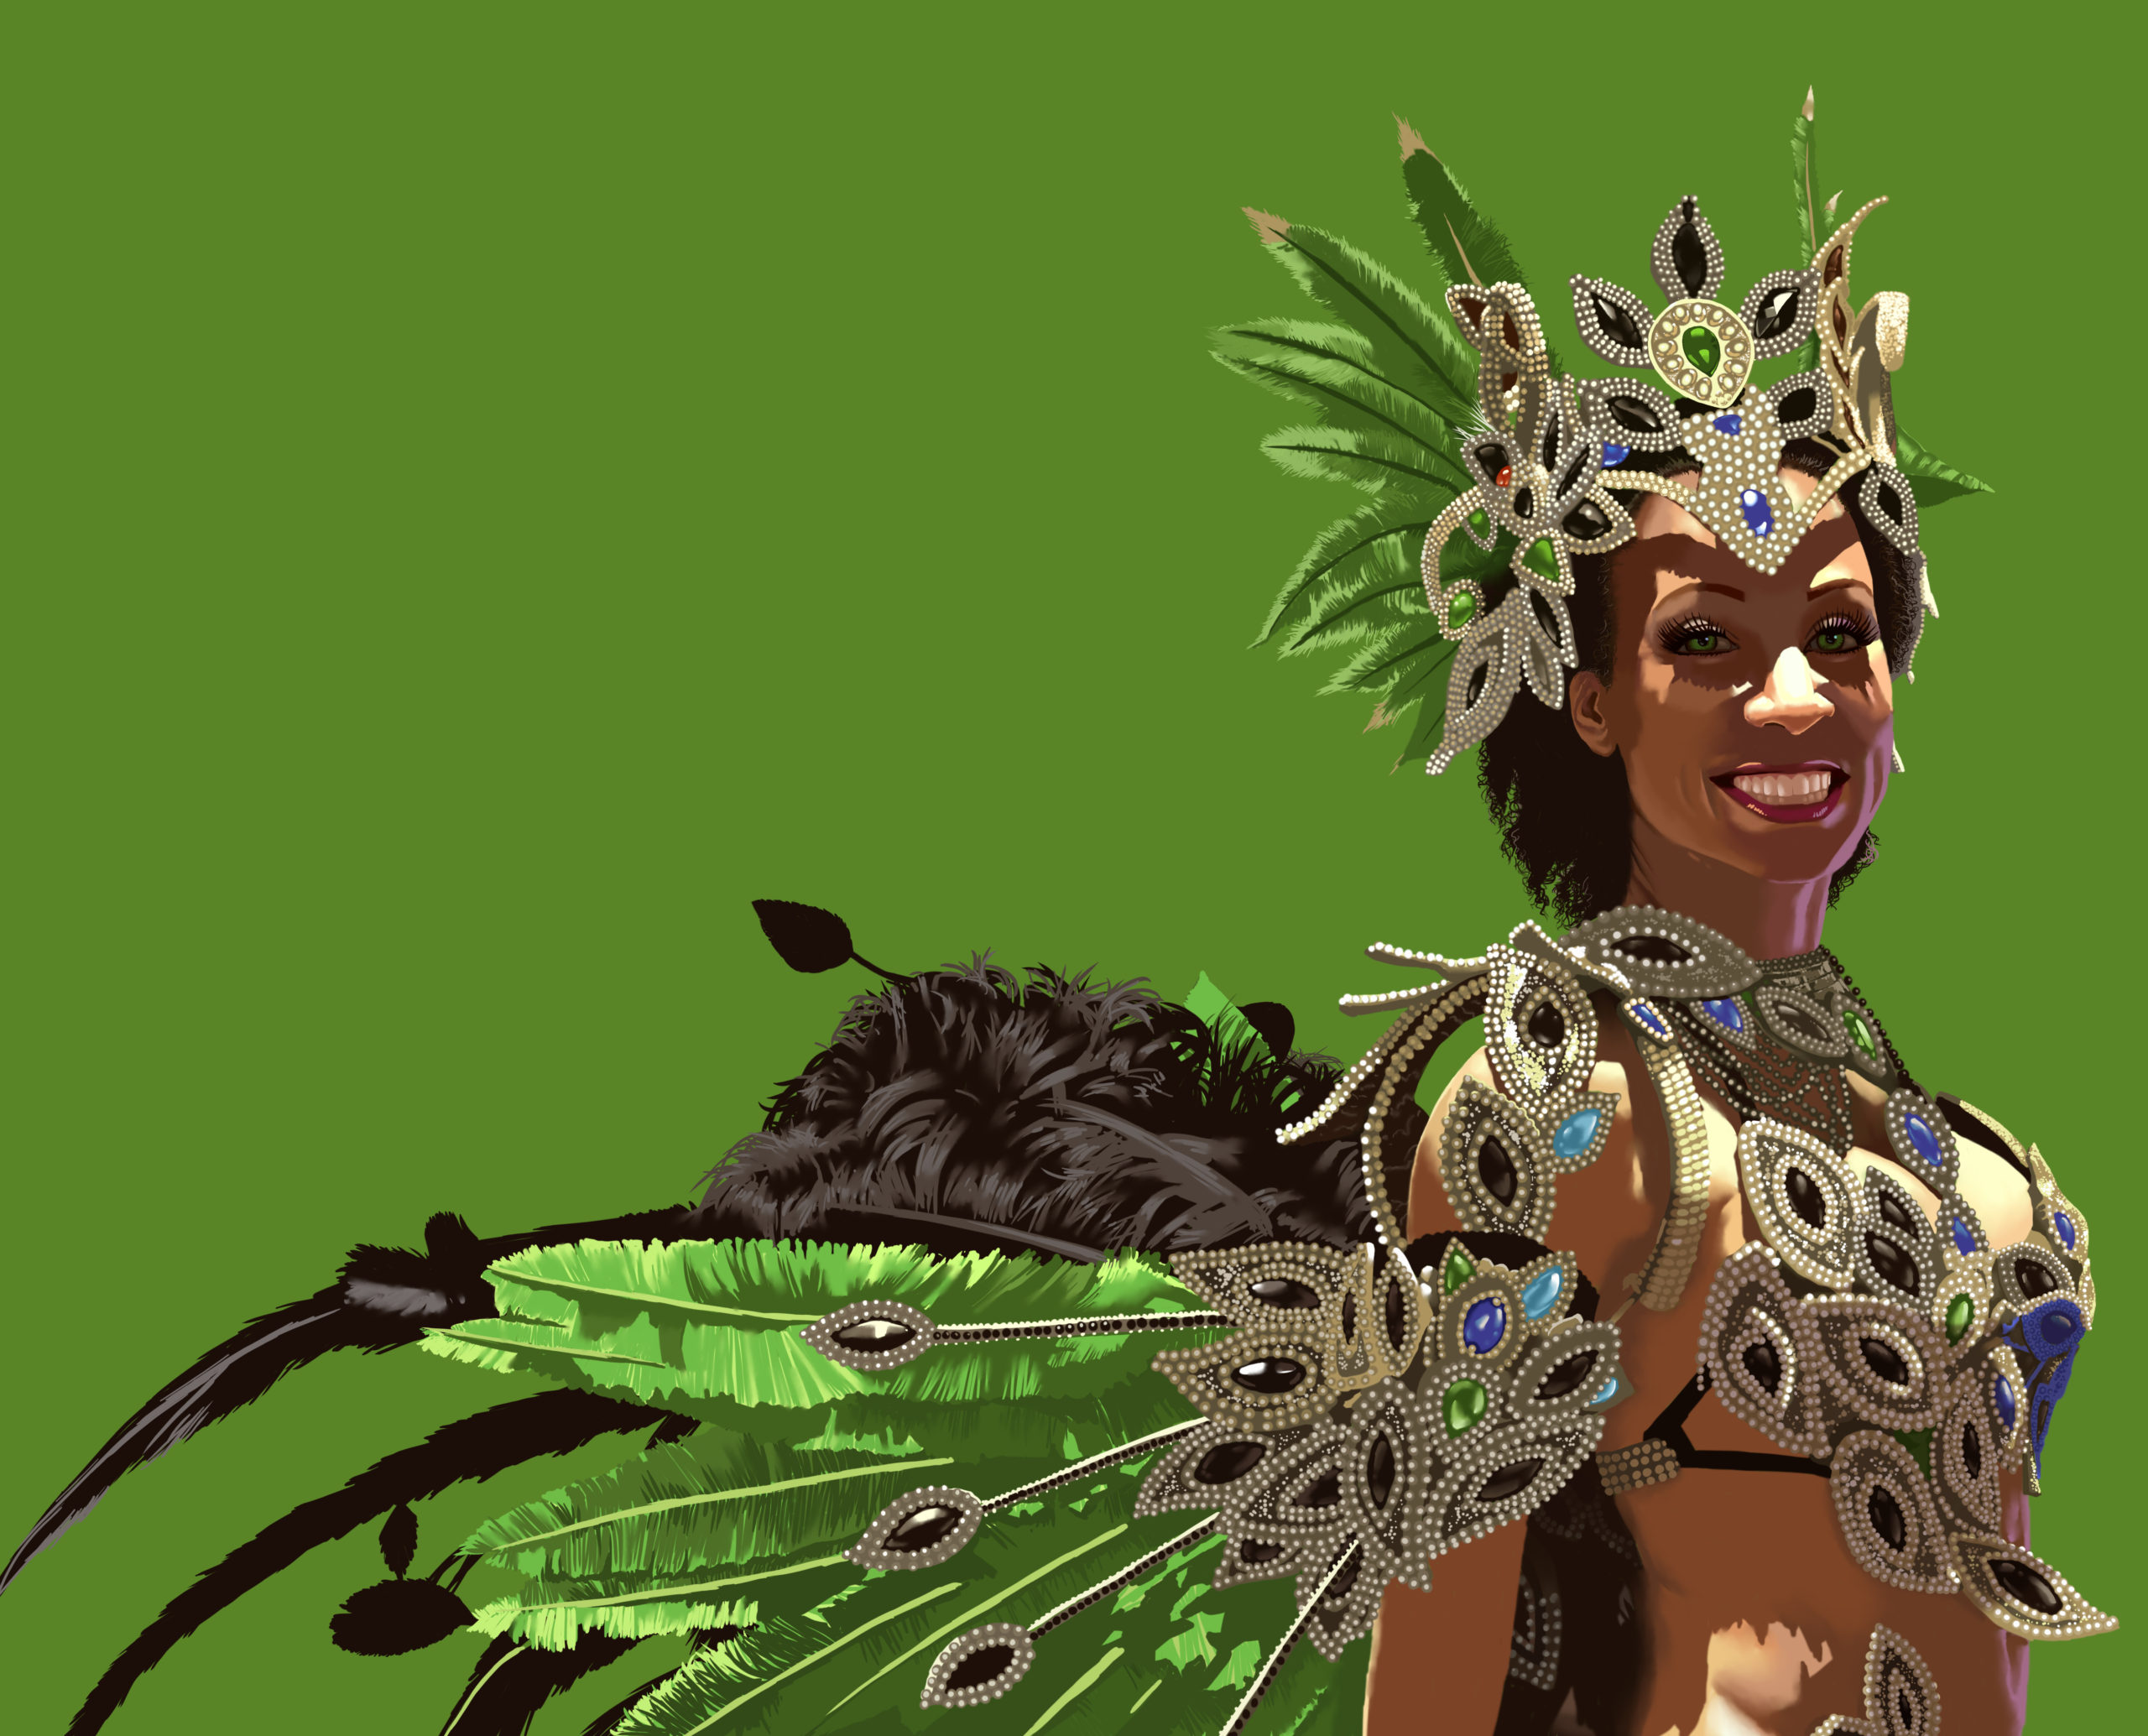 The-Green-Eyed-Samba-Girl-1-scaled